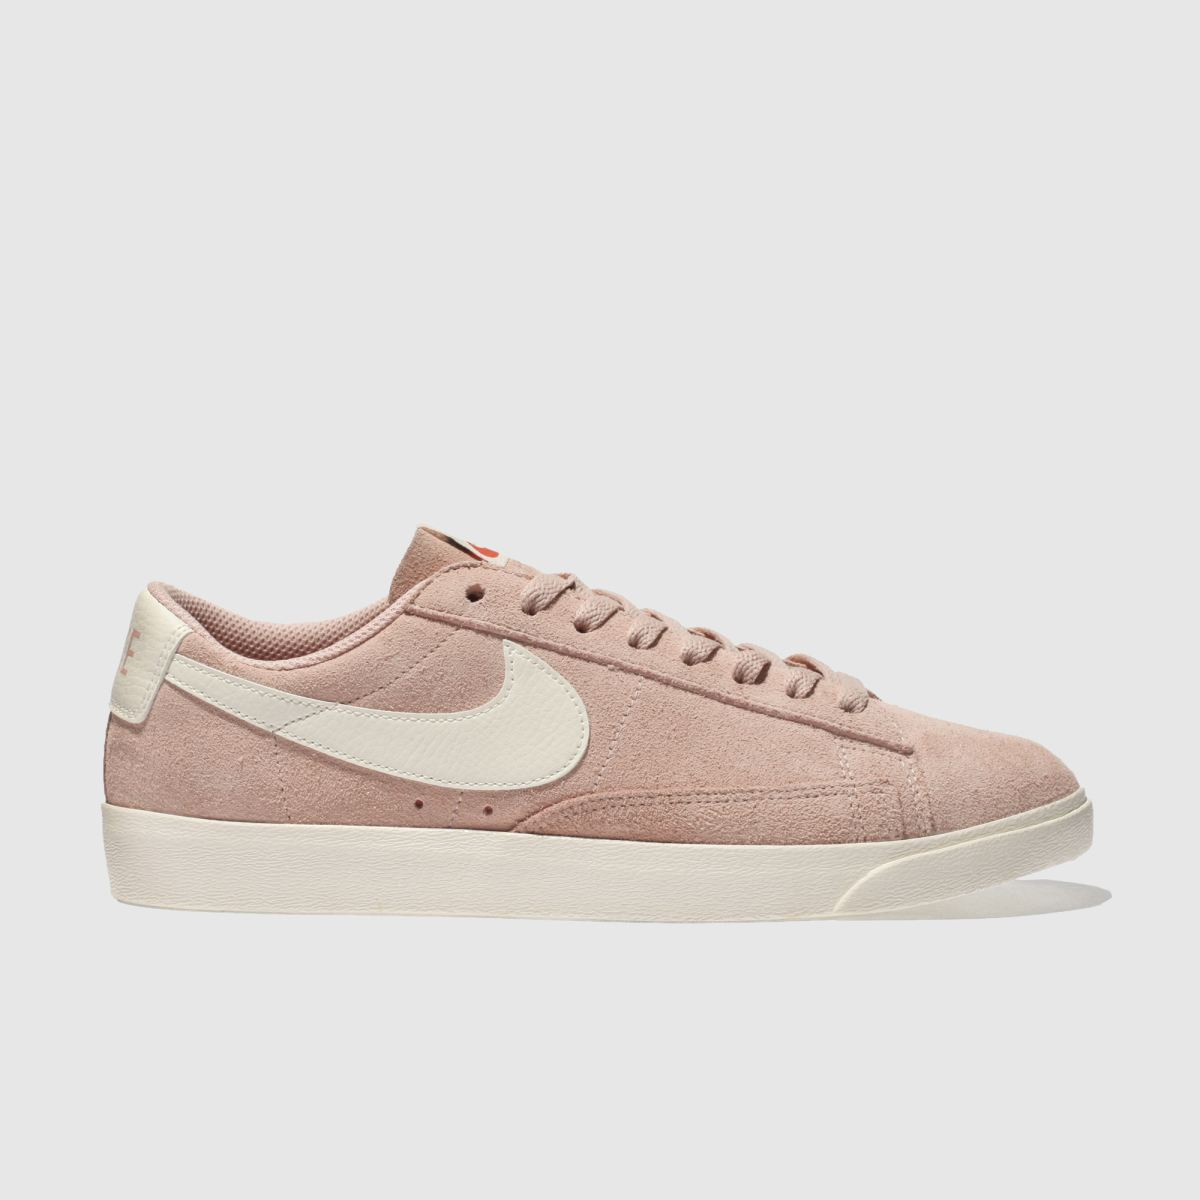 Nike Pale Pink Blazer Low Suede Trainers